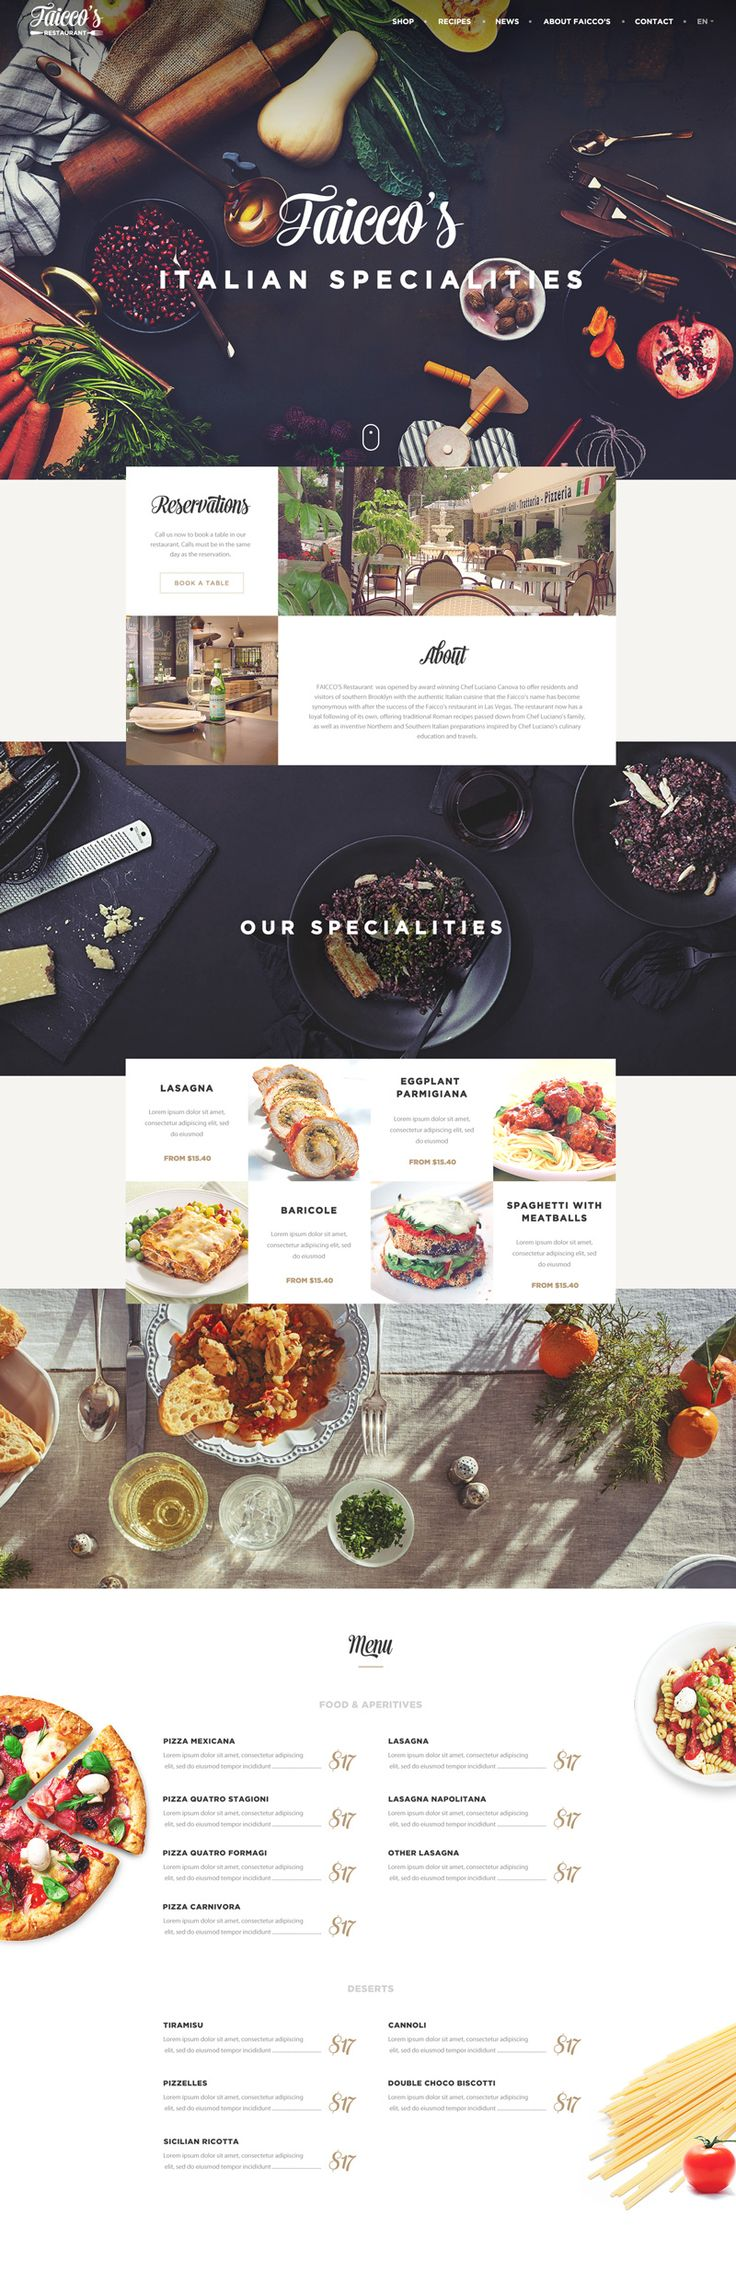 Faicco's Concept Restaurant Website